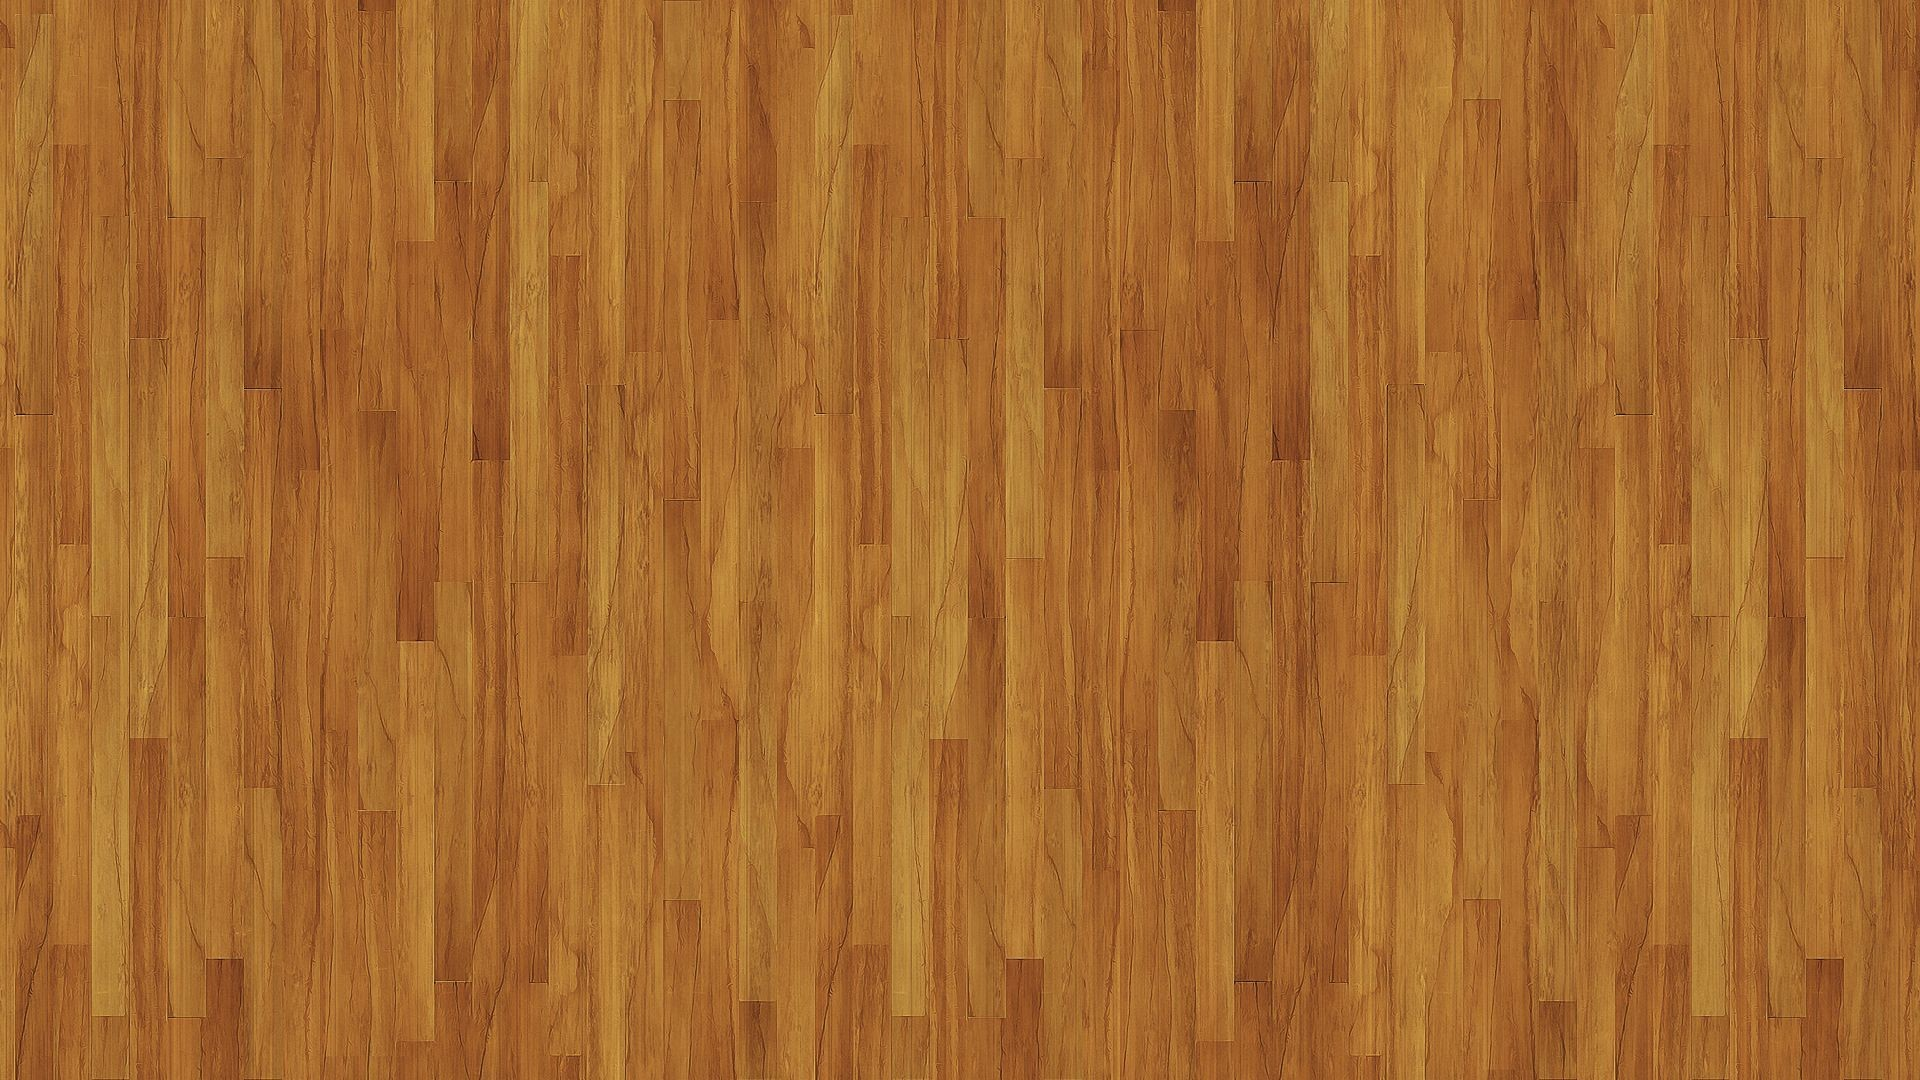 Wood Flooring Background And Wood Floor Wallpaper Best Pictures Wallpaper  Images Home .